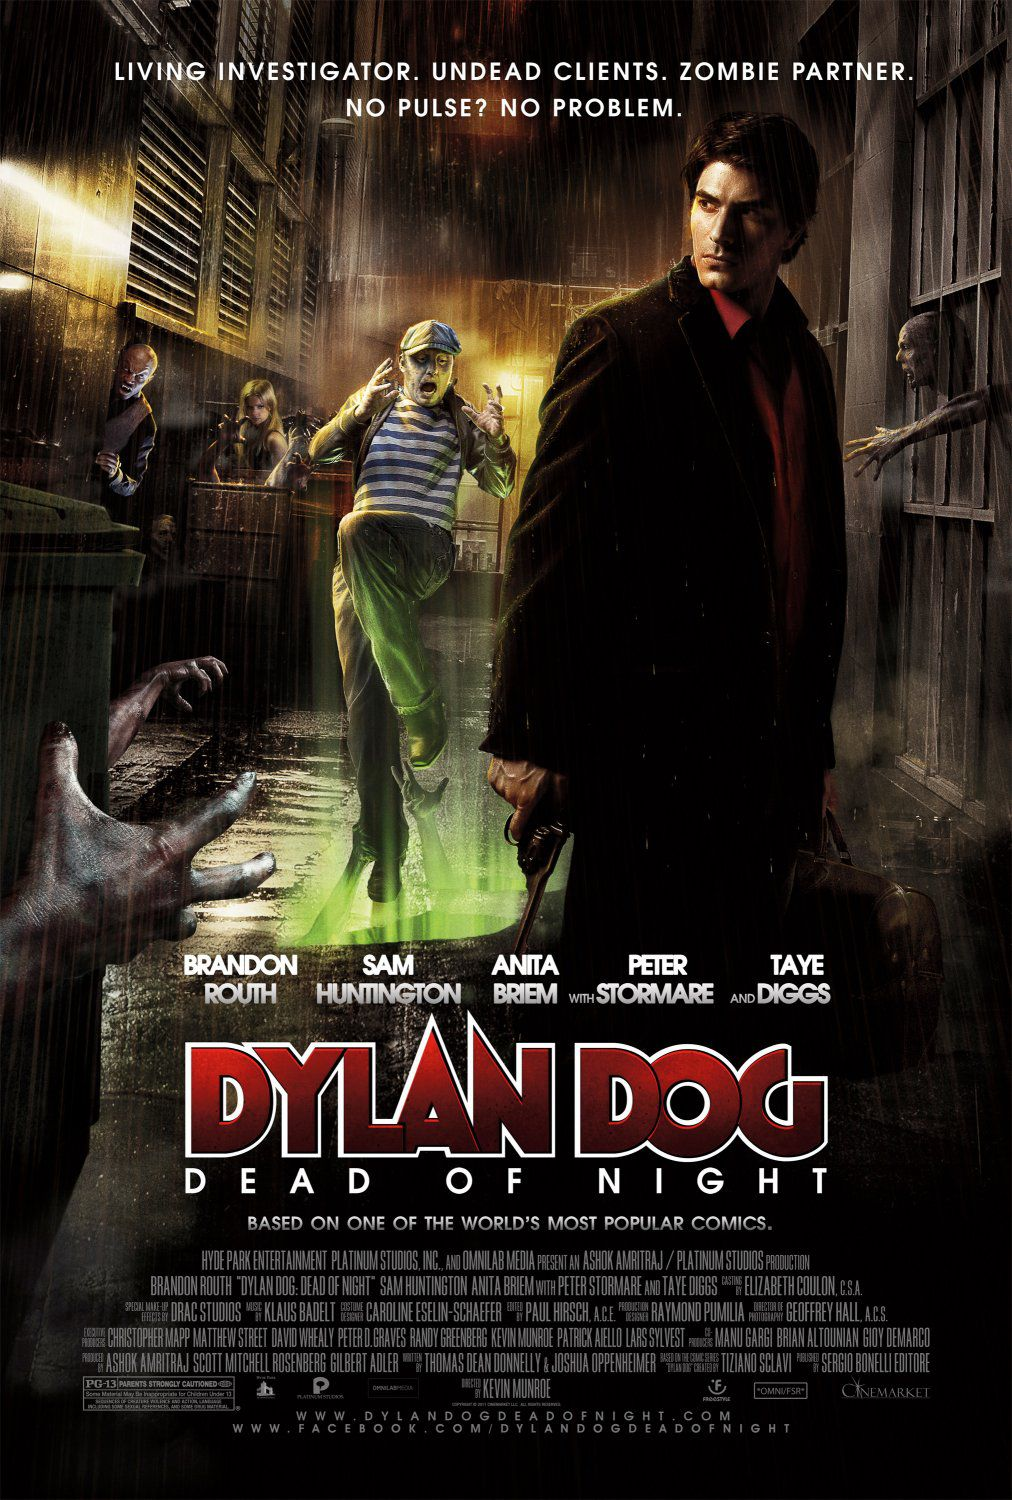 Dylan Dog Dead of Night - live action film - Brandon Routh - Peter Stormare - Sam Huntington - Taye Diggs - poster